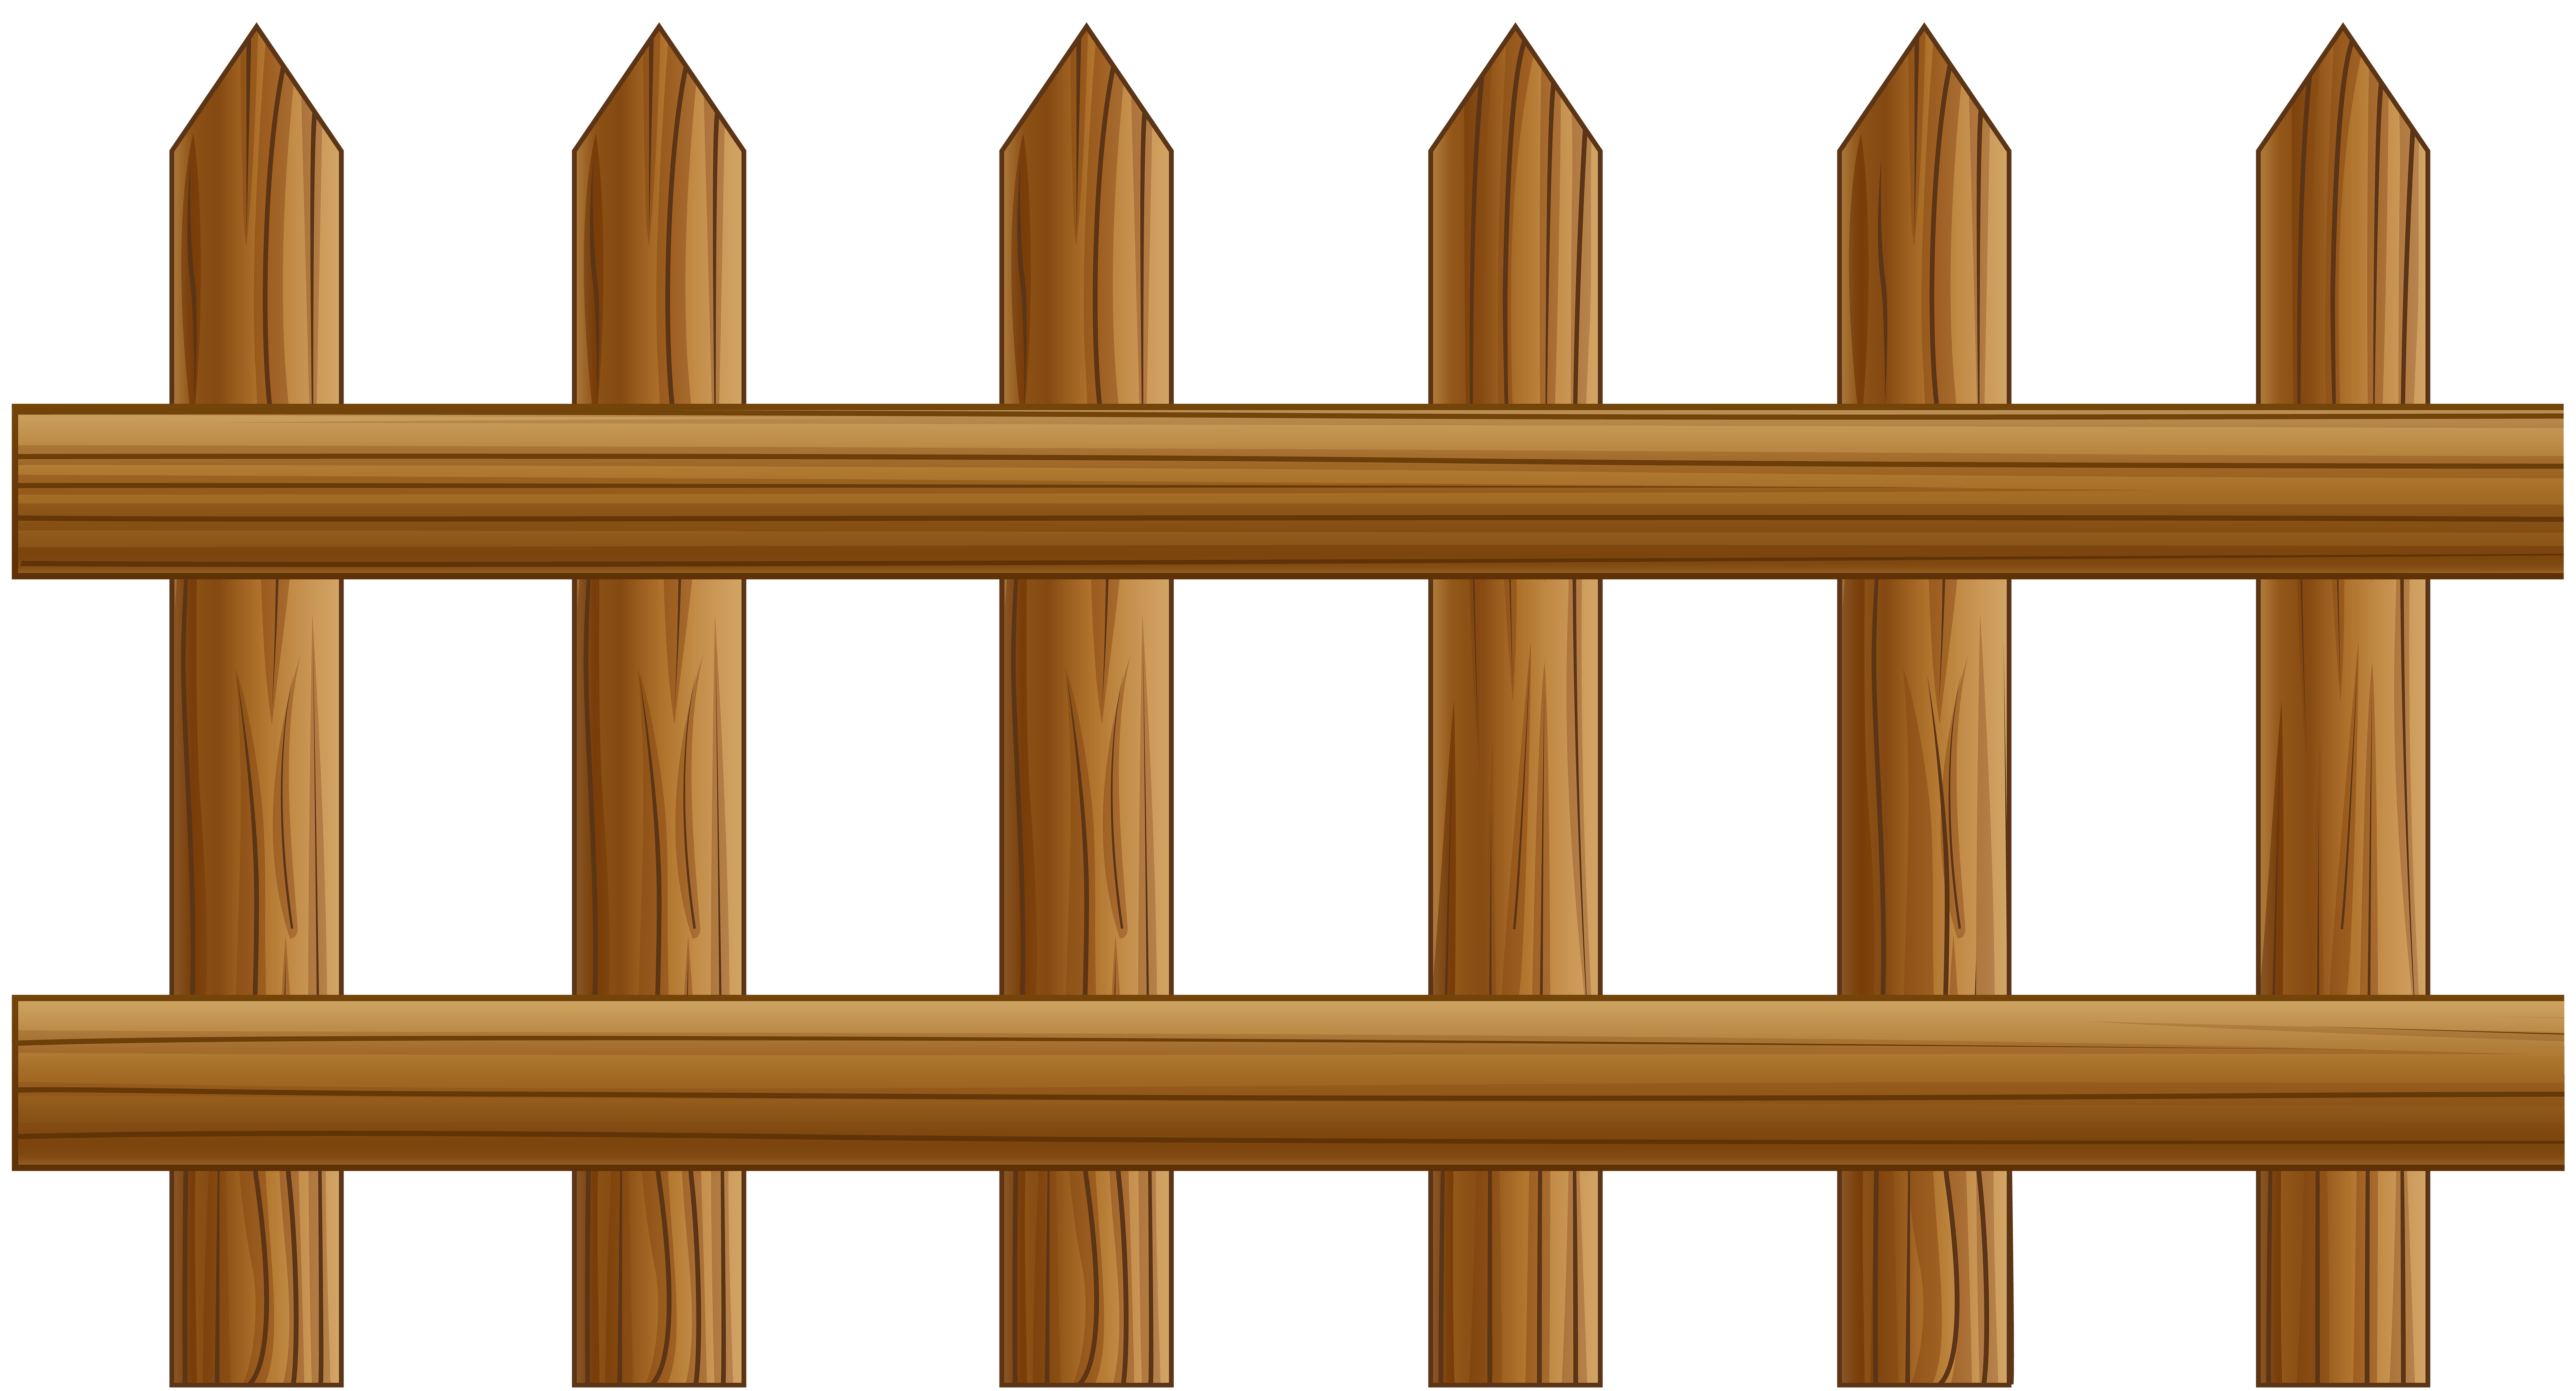 Fence Clip Art PNG Image.